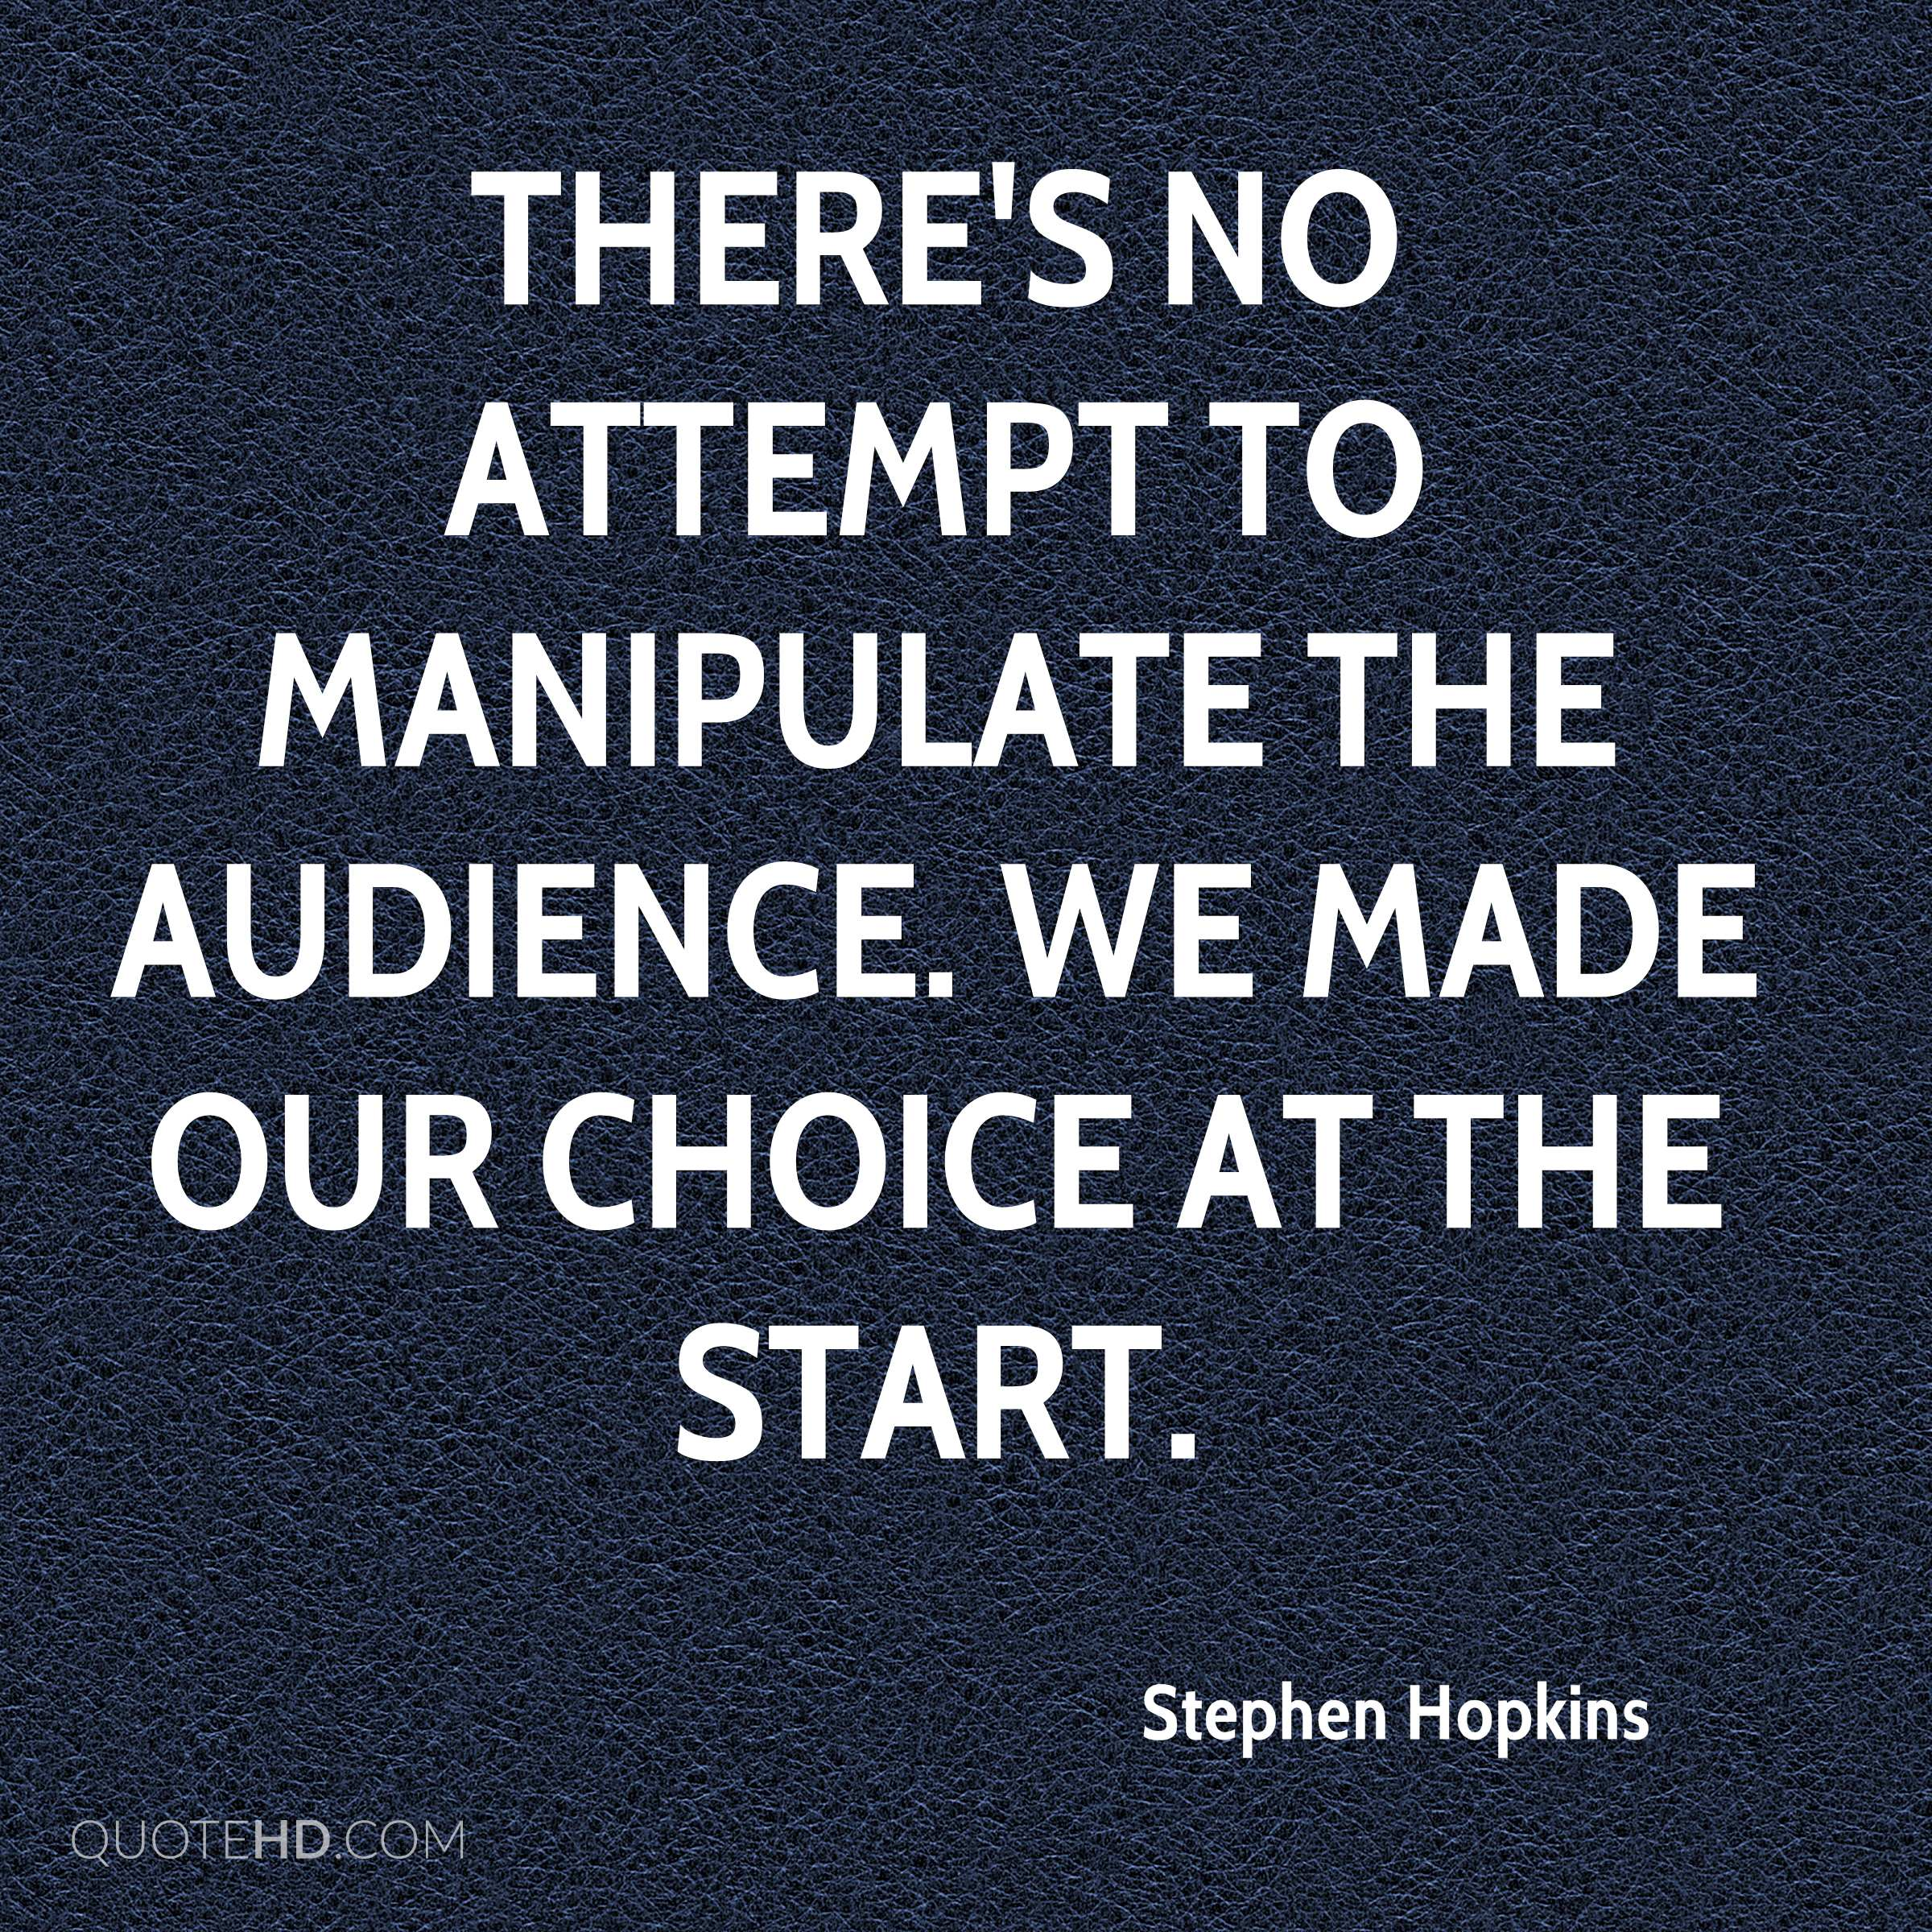 There's no attempt to manipulate the audience. We made our choice at the start.